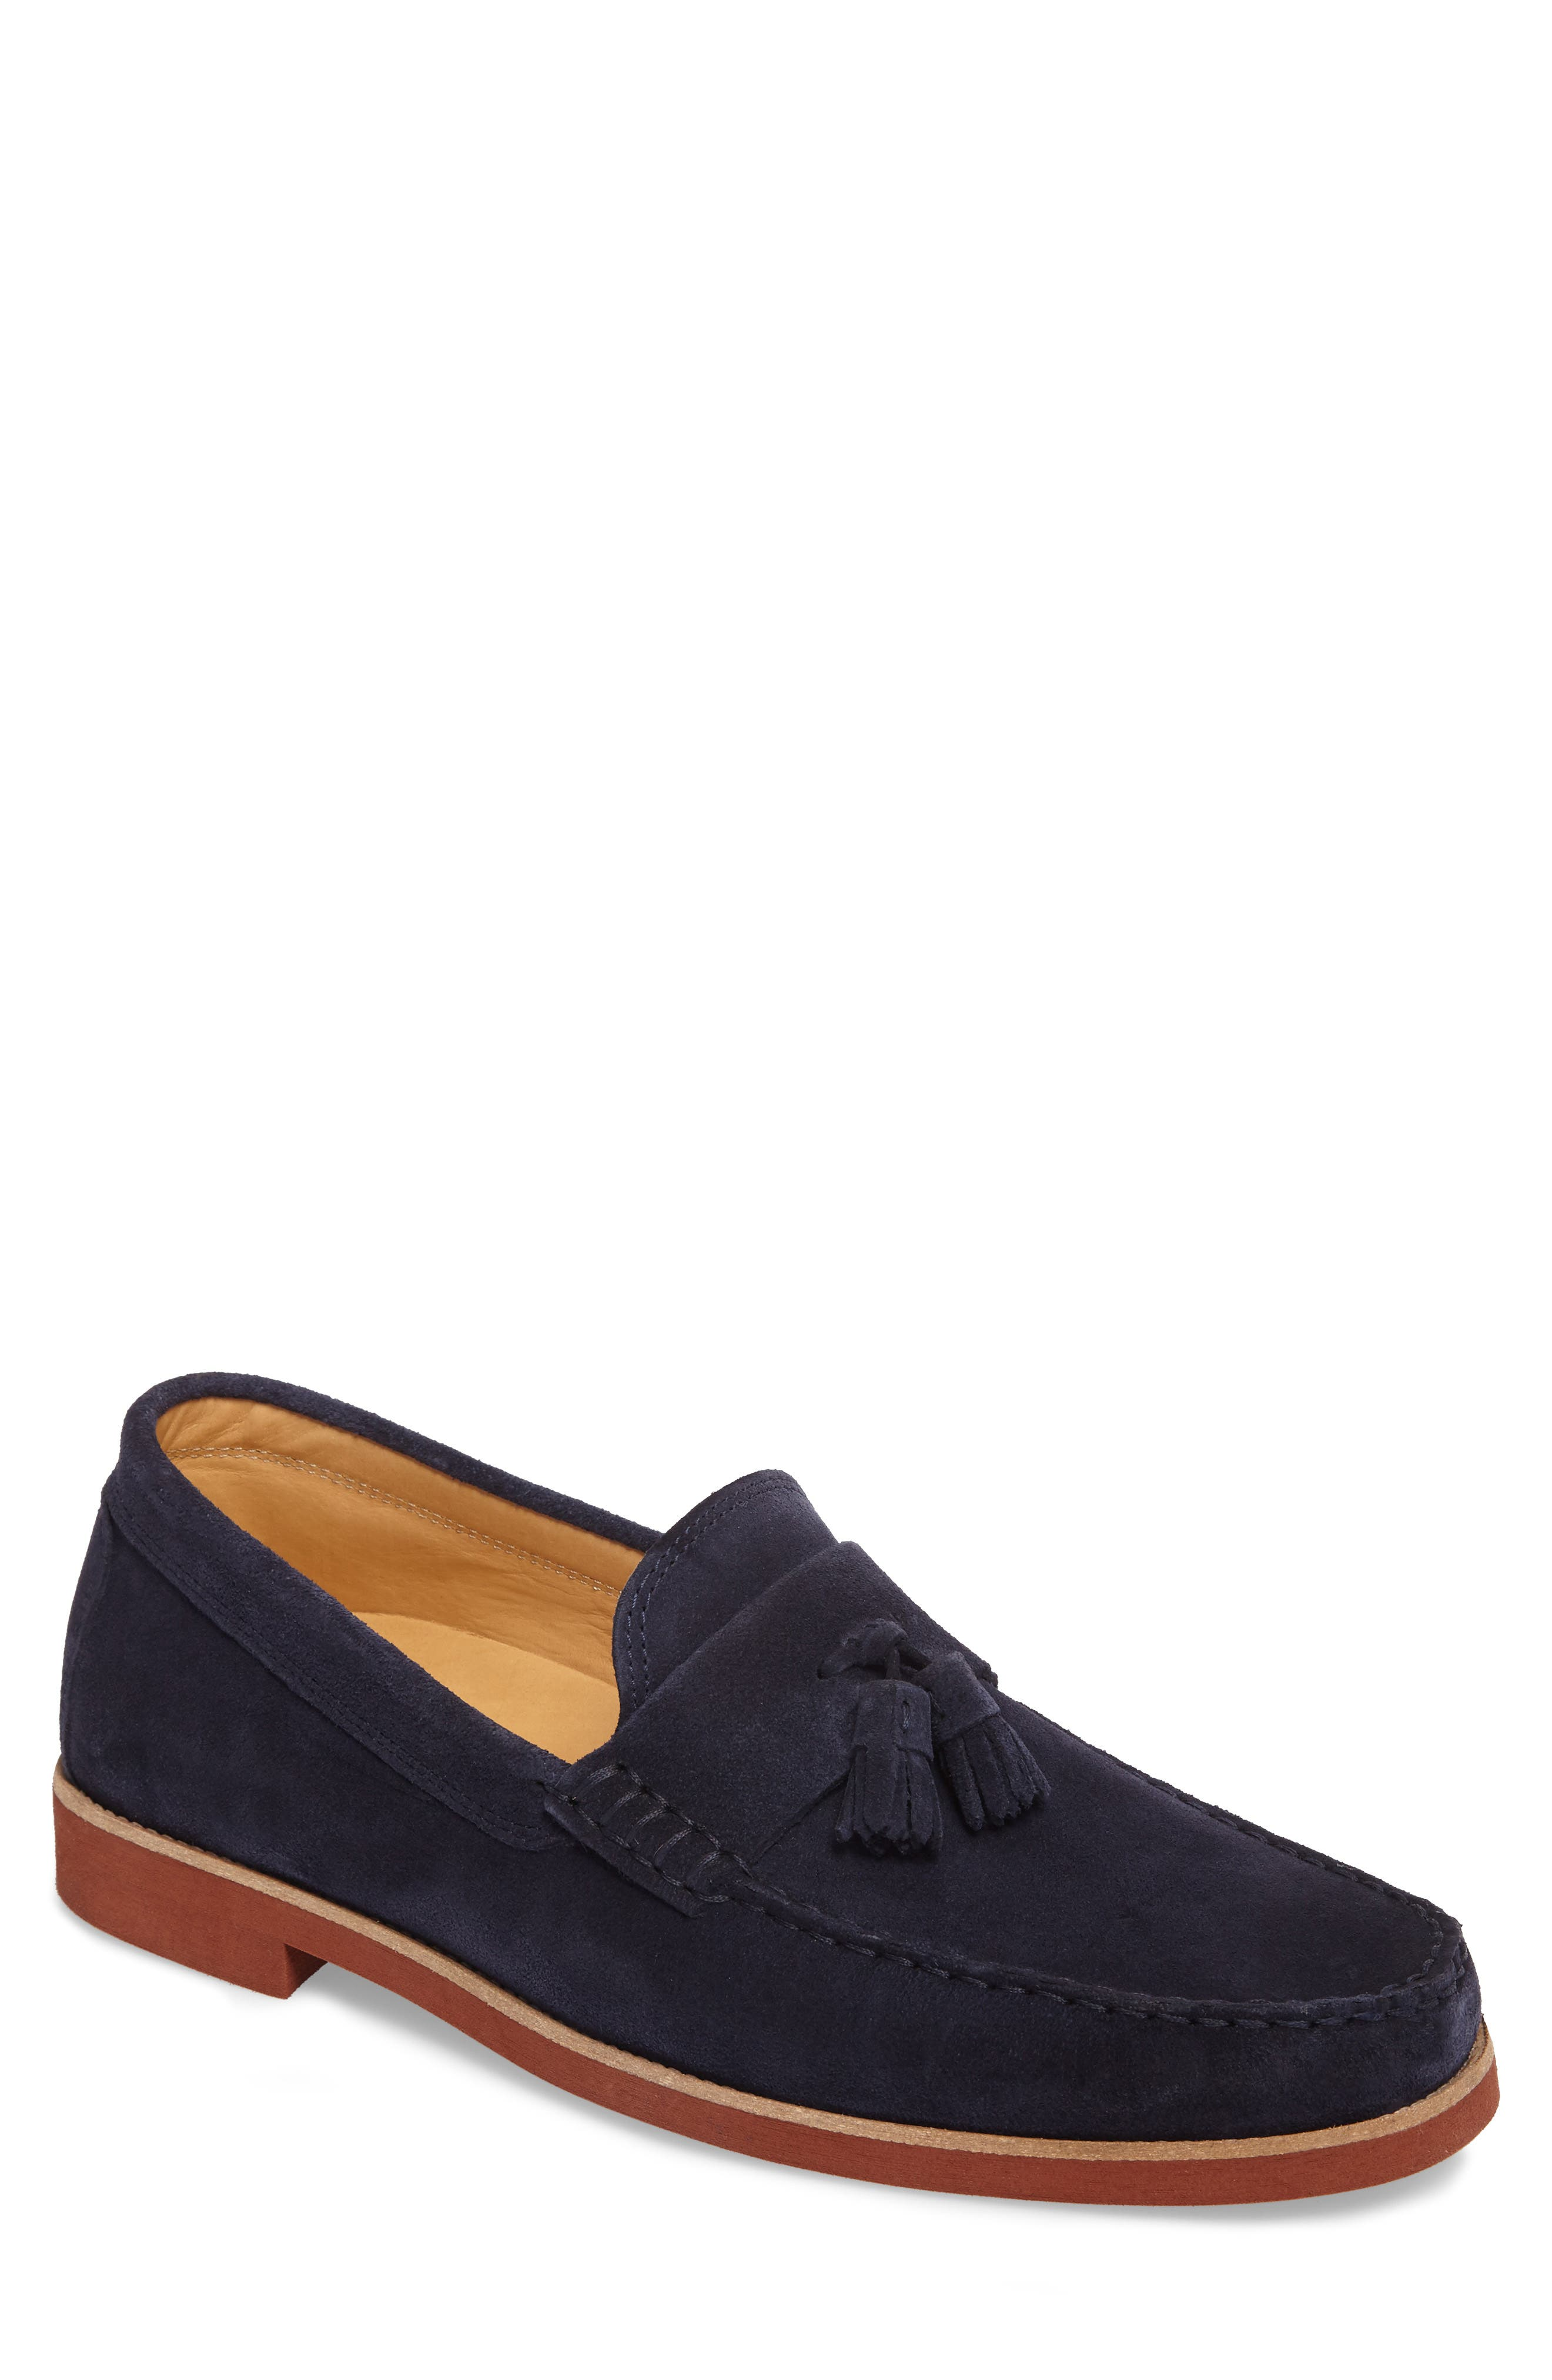 Stowes Tassel Loafer,                         Main,                         color, Navy Suede